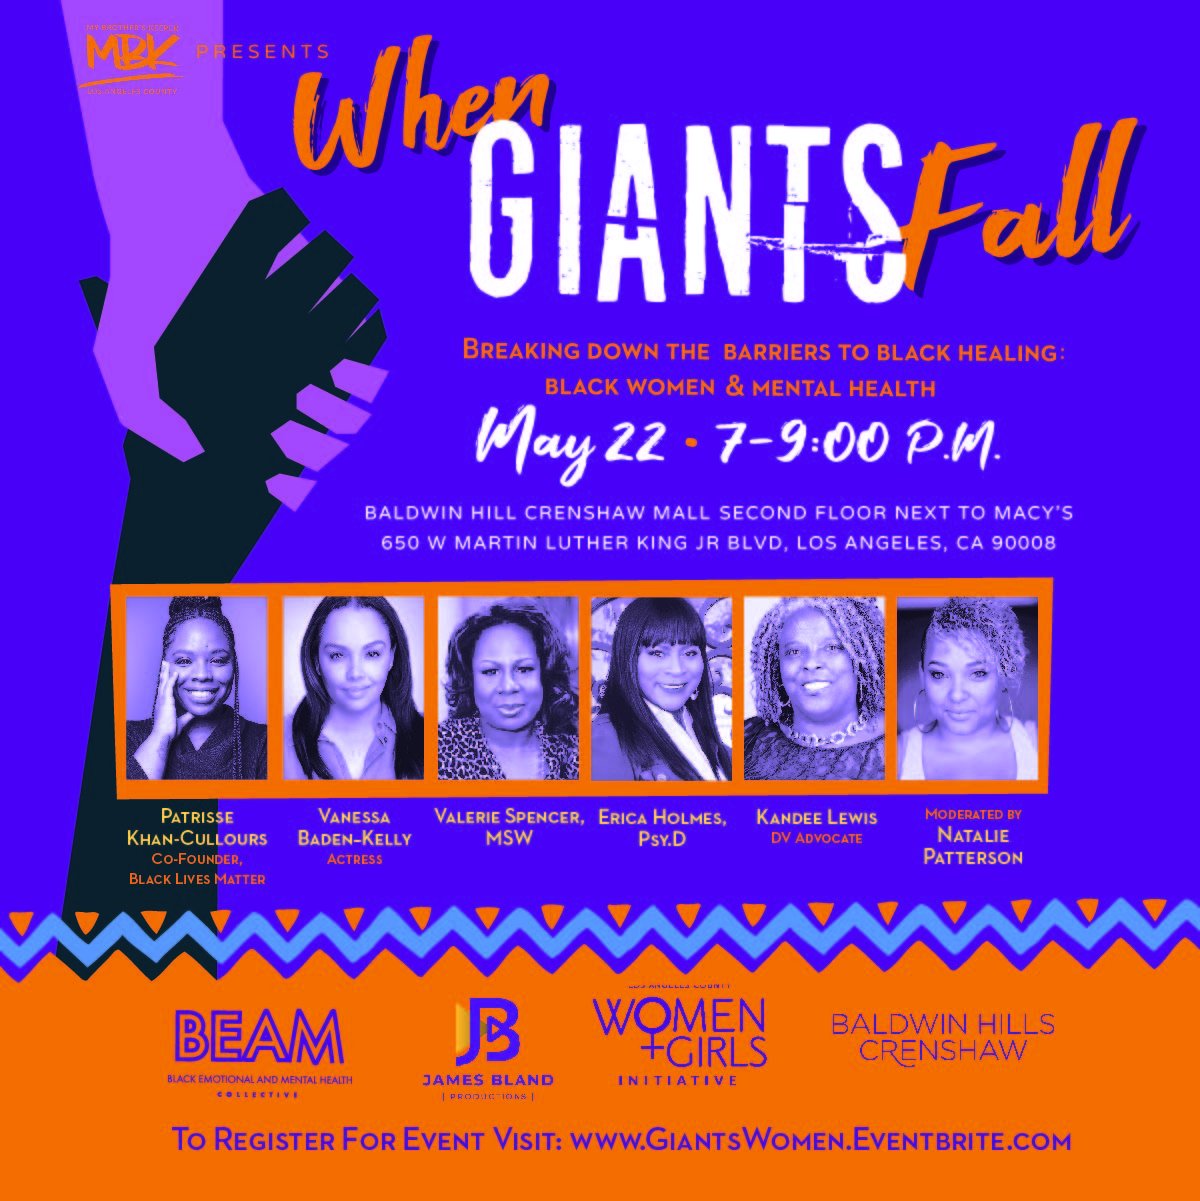 Giants_flyer_web_1200x1200.jpg